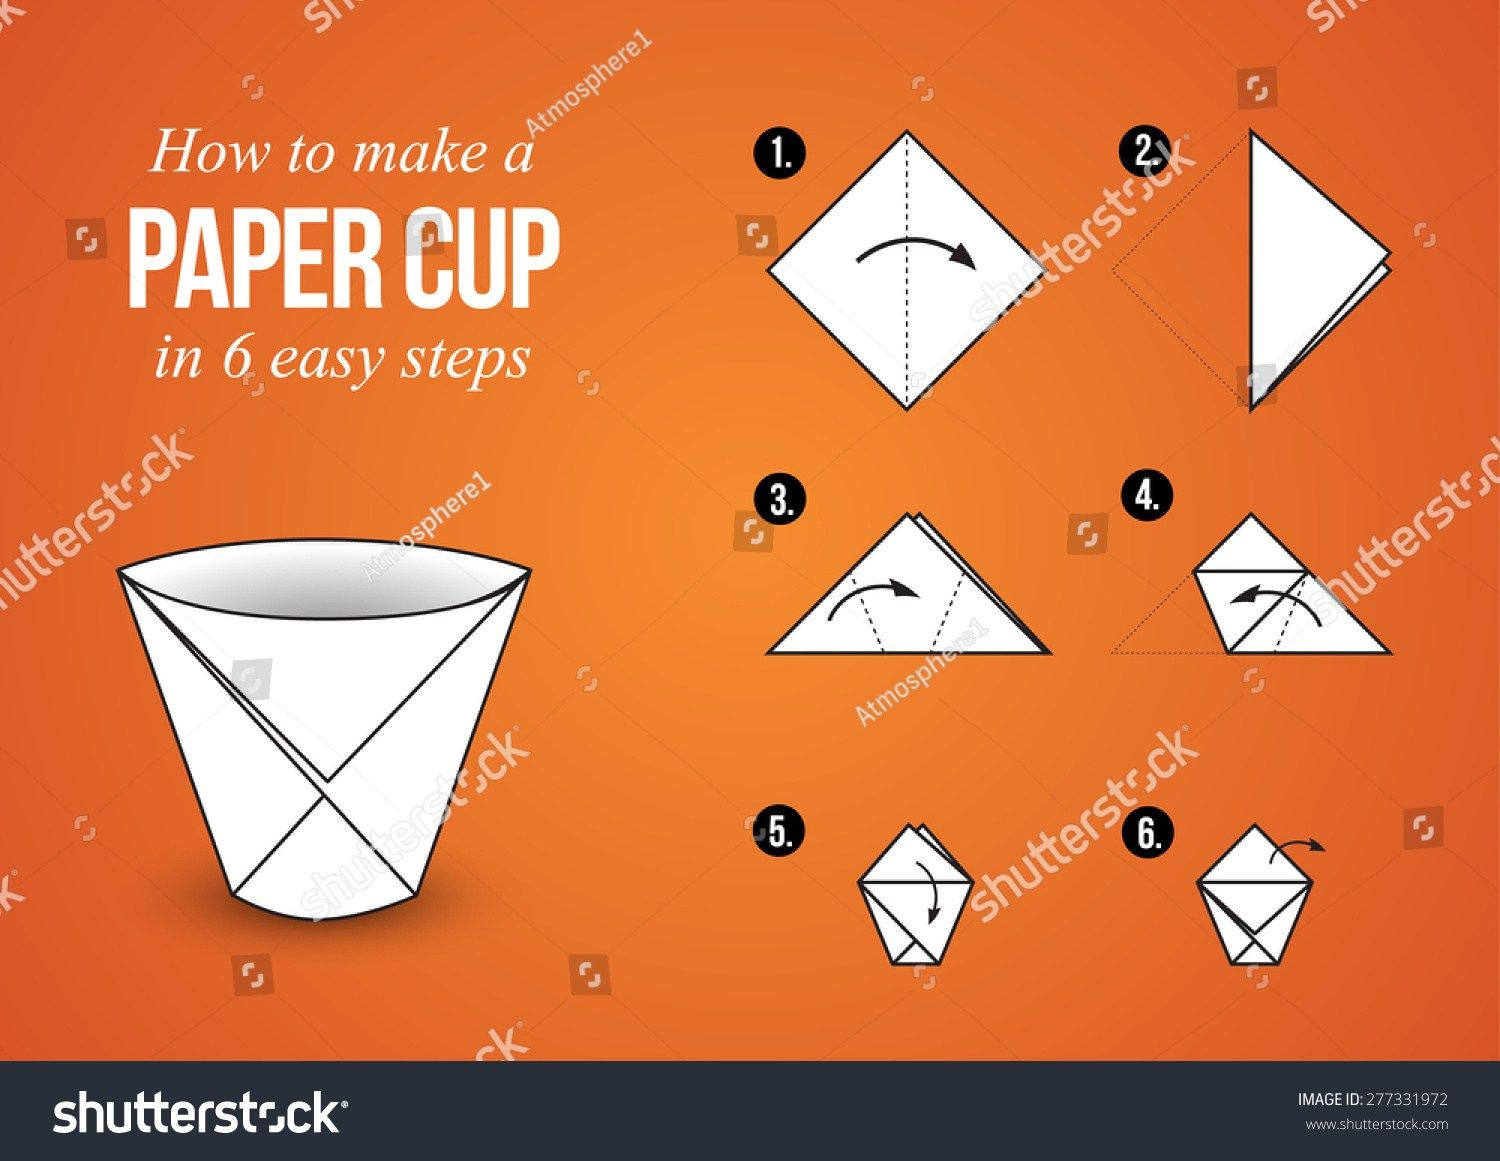 Origami For Beginners Step By Step Easy Origami Pig Face Easy Origami For Kids Kids Crafts For Easy Ori Origami For Beginners Origami Tutorial Easy Origami Cup